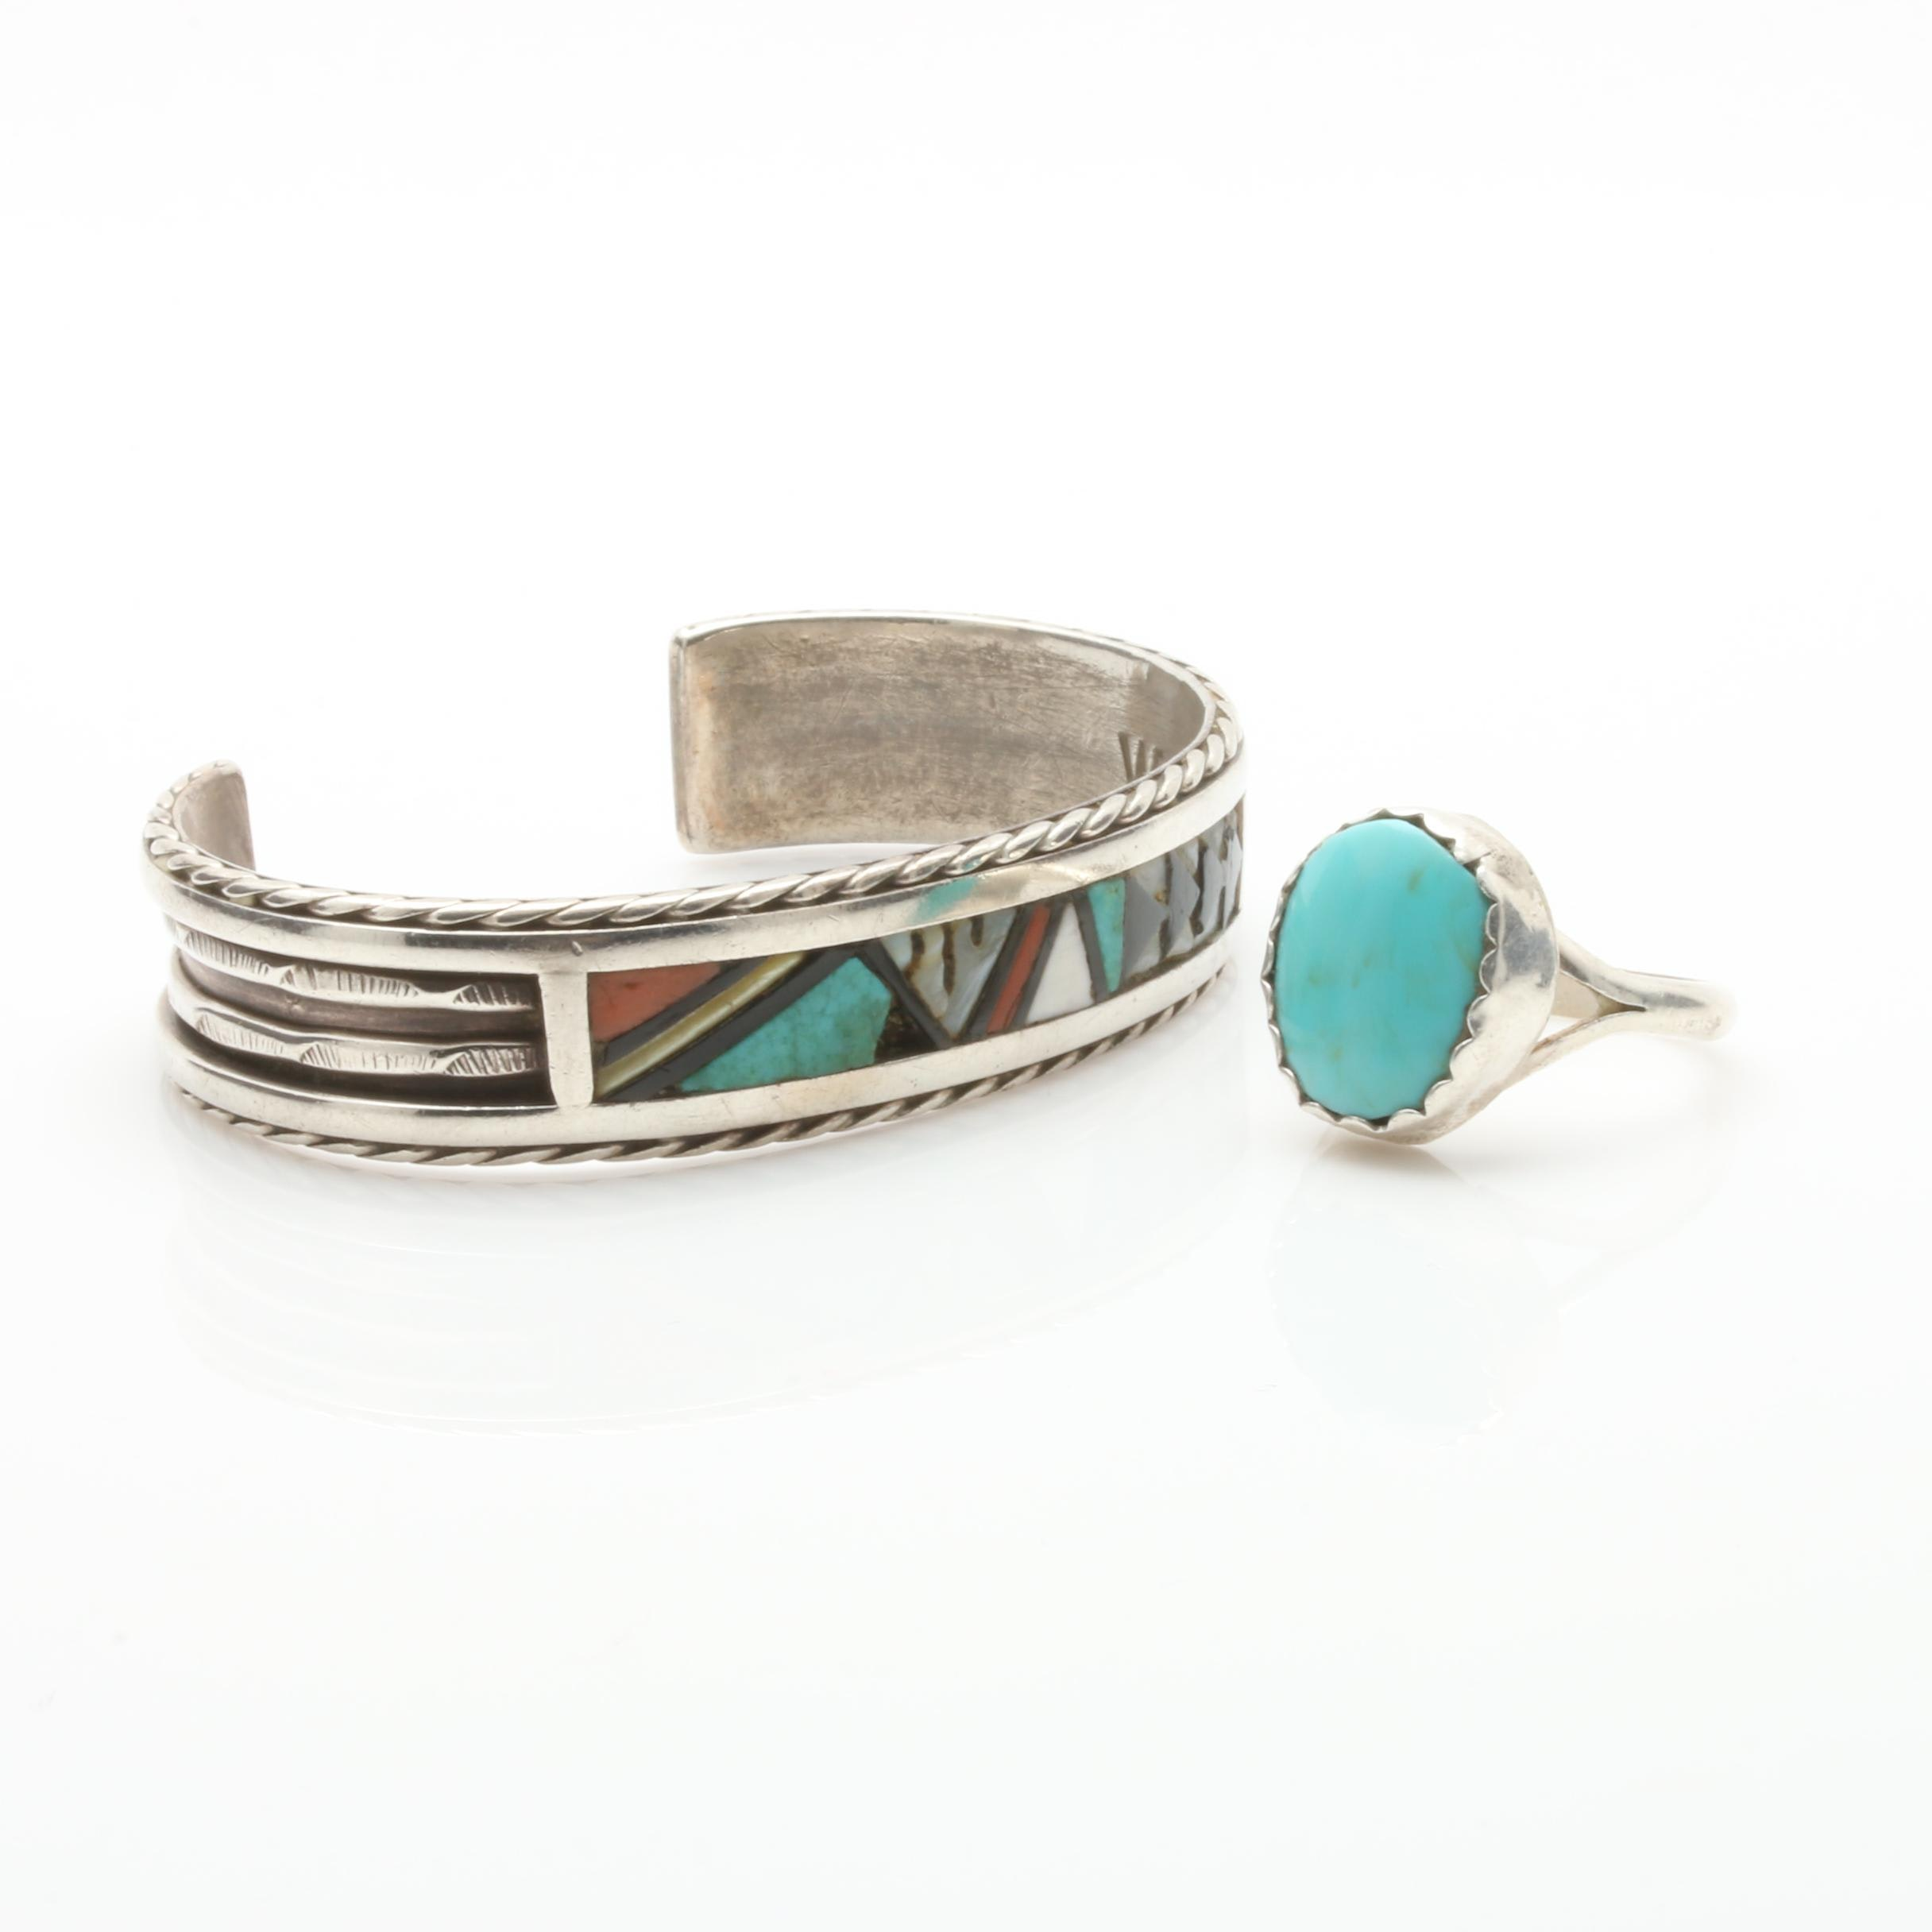 Southwestern Style Sterling Silver Imitation Turquoise Ring and Inlay Bracelet